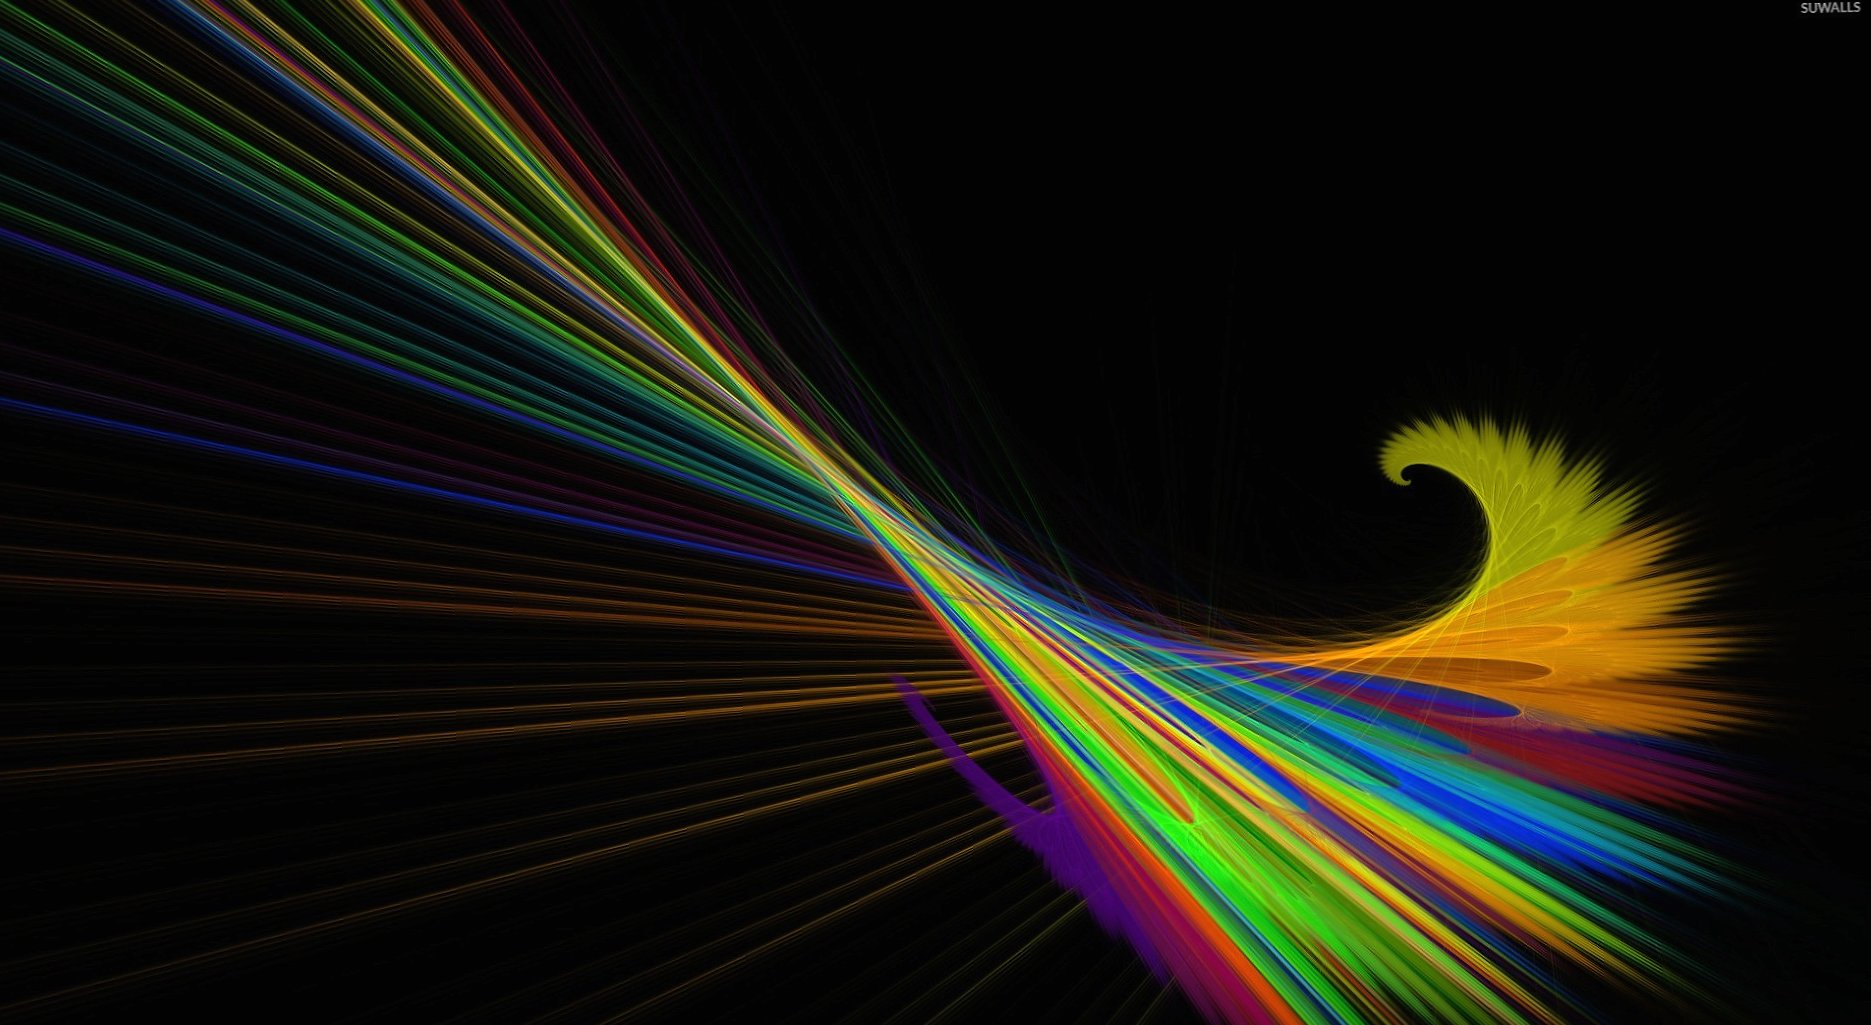 Swirly colorful lines wallpapers HD quality